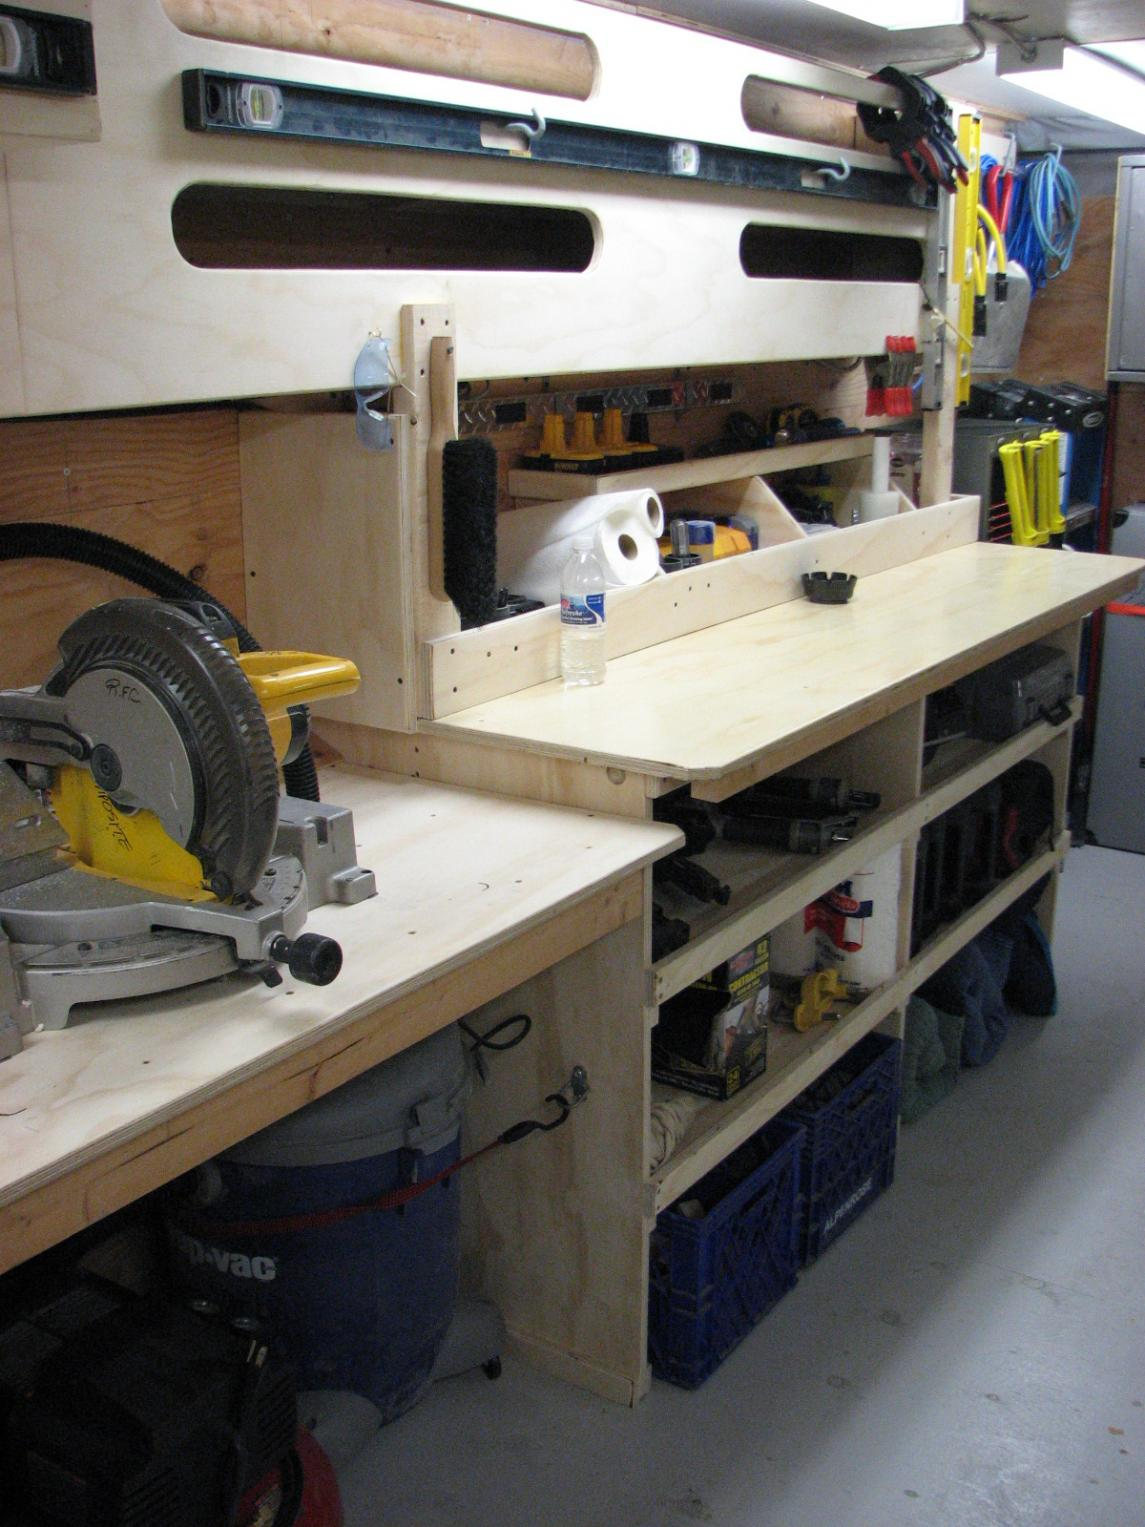 Job site trailers show off your set ups page 10 for Rv workshop